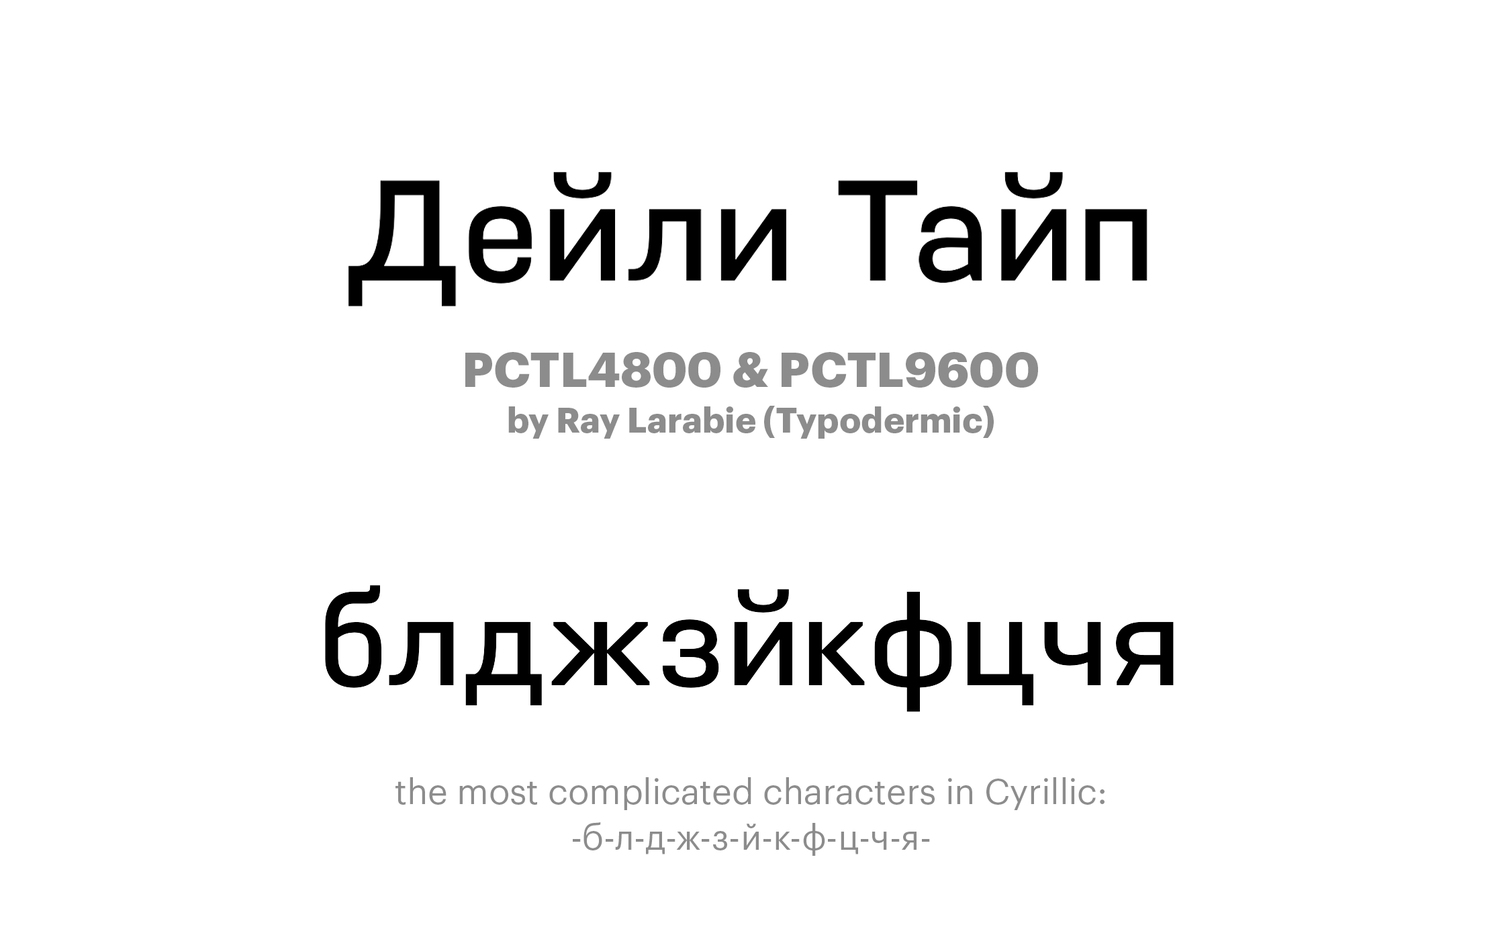 PCTL4800-&-PCTL9600-by-Ray-Larabie-(Typodermic)